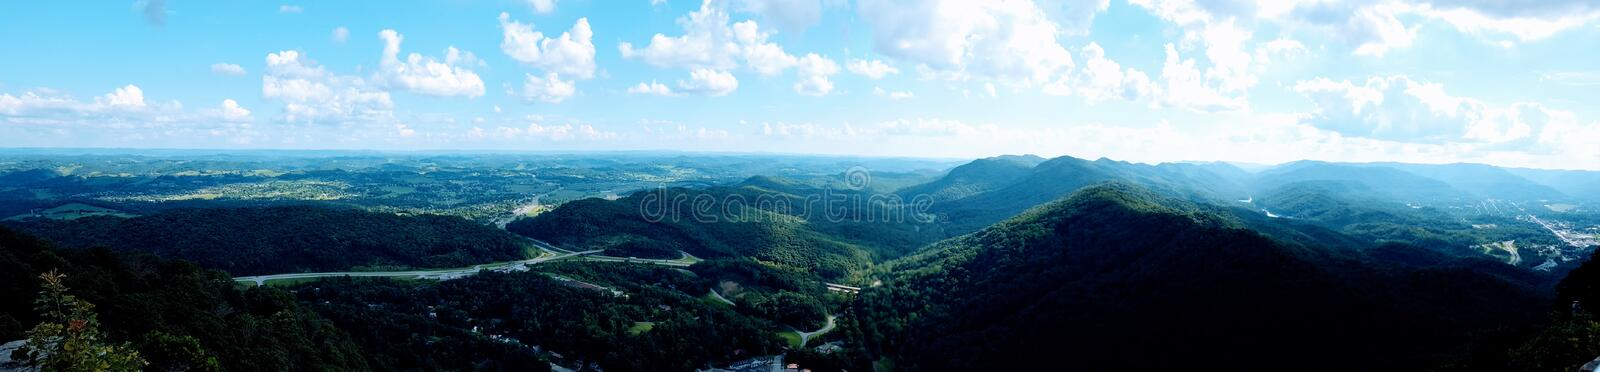 Panaroma of mountains and valleys taken in southeast kentucky royalty free stock images